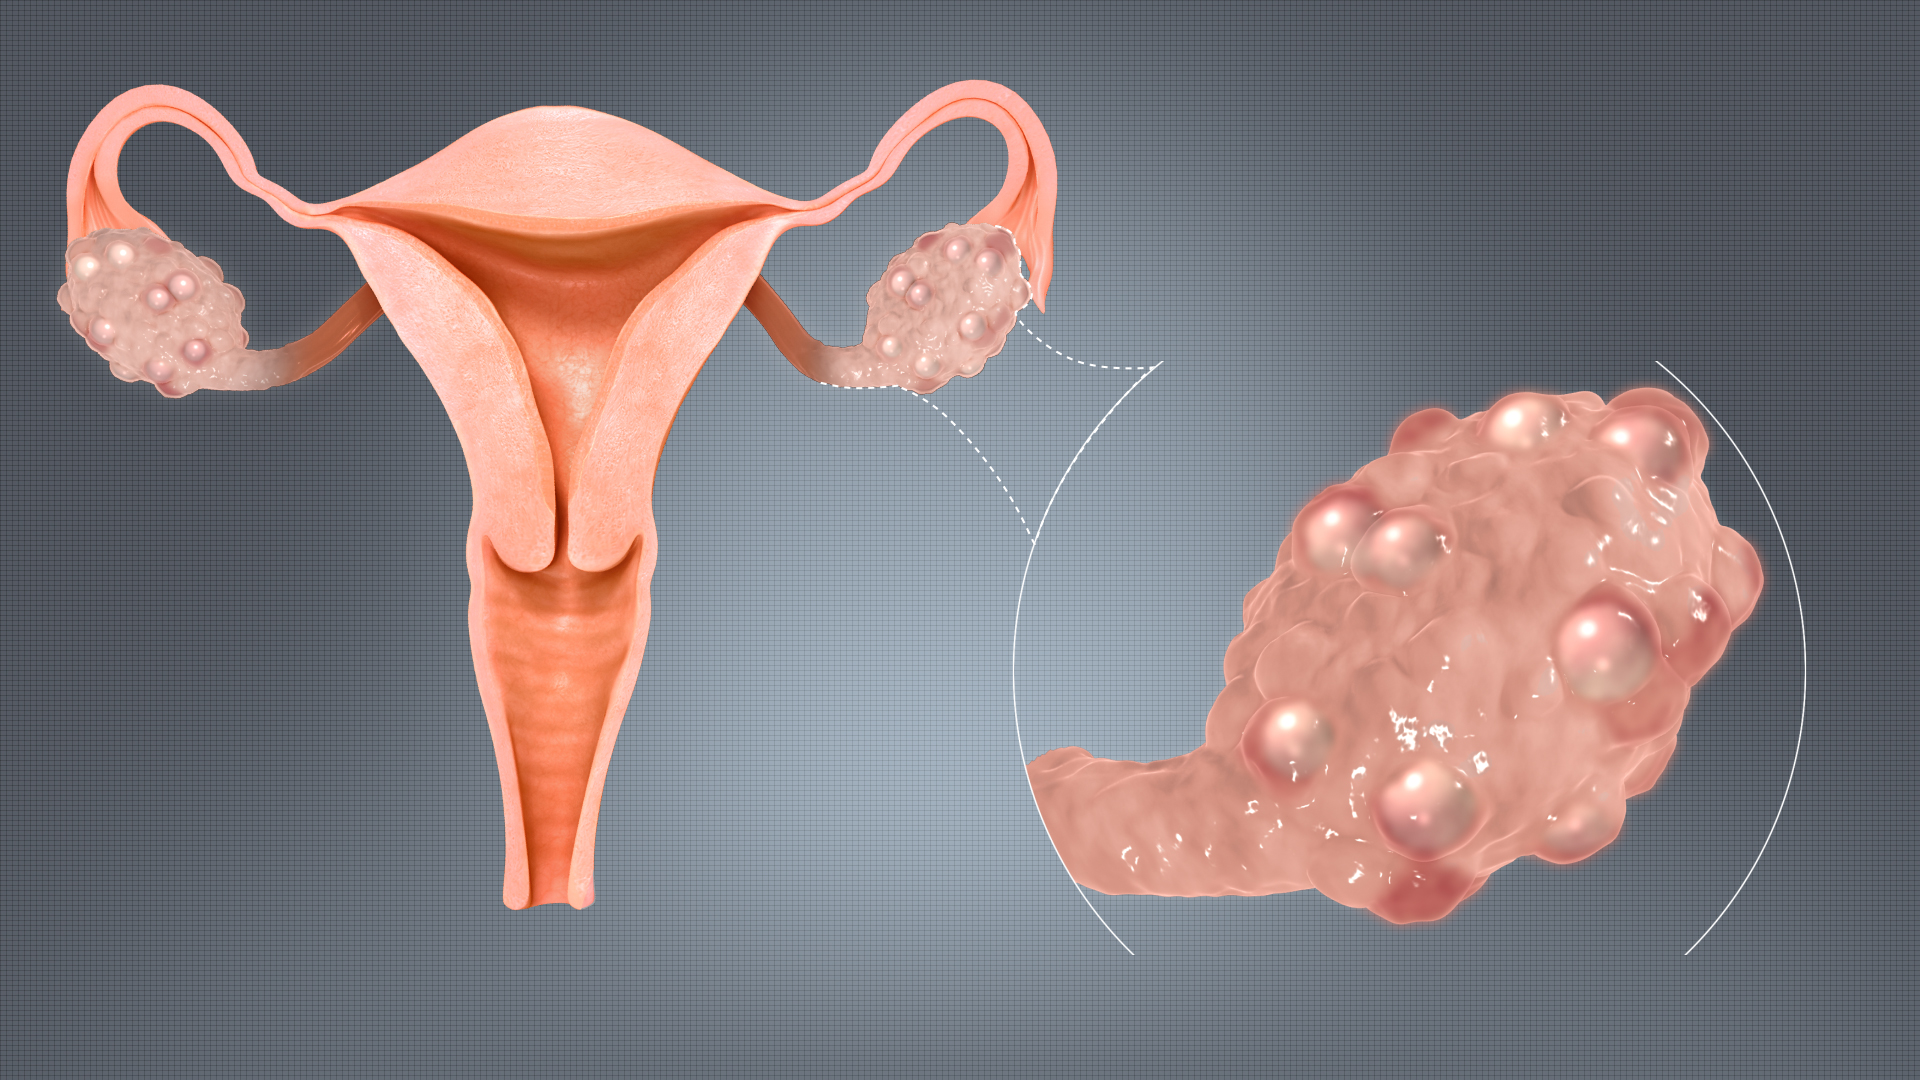 Polycystic Ovarian Disease: Causes, Symptoms and PCOD Solutions